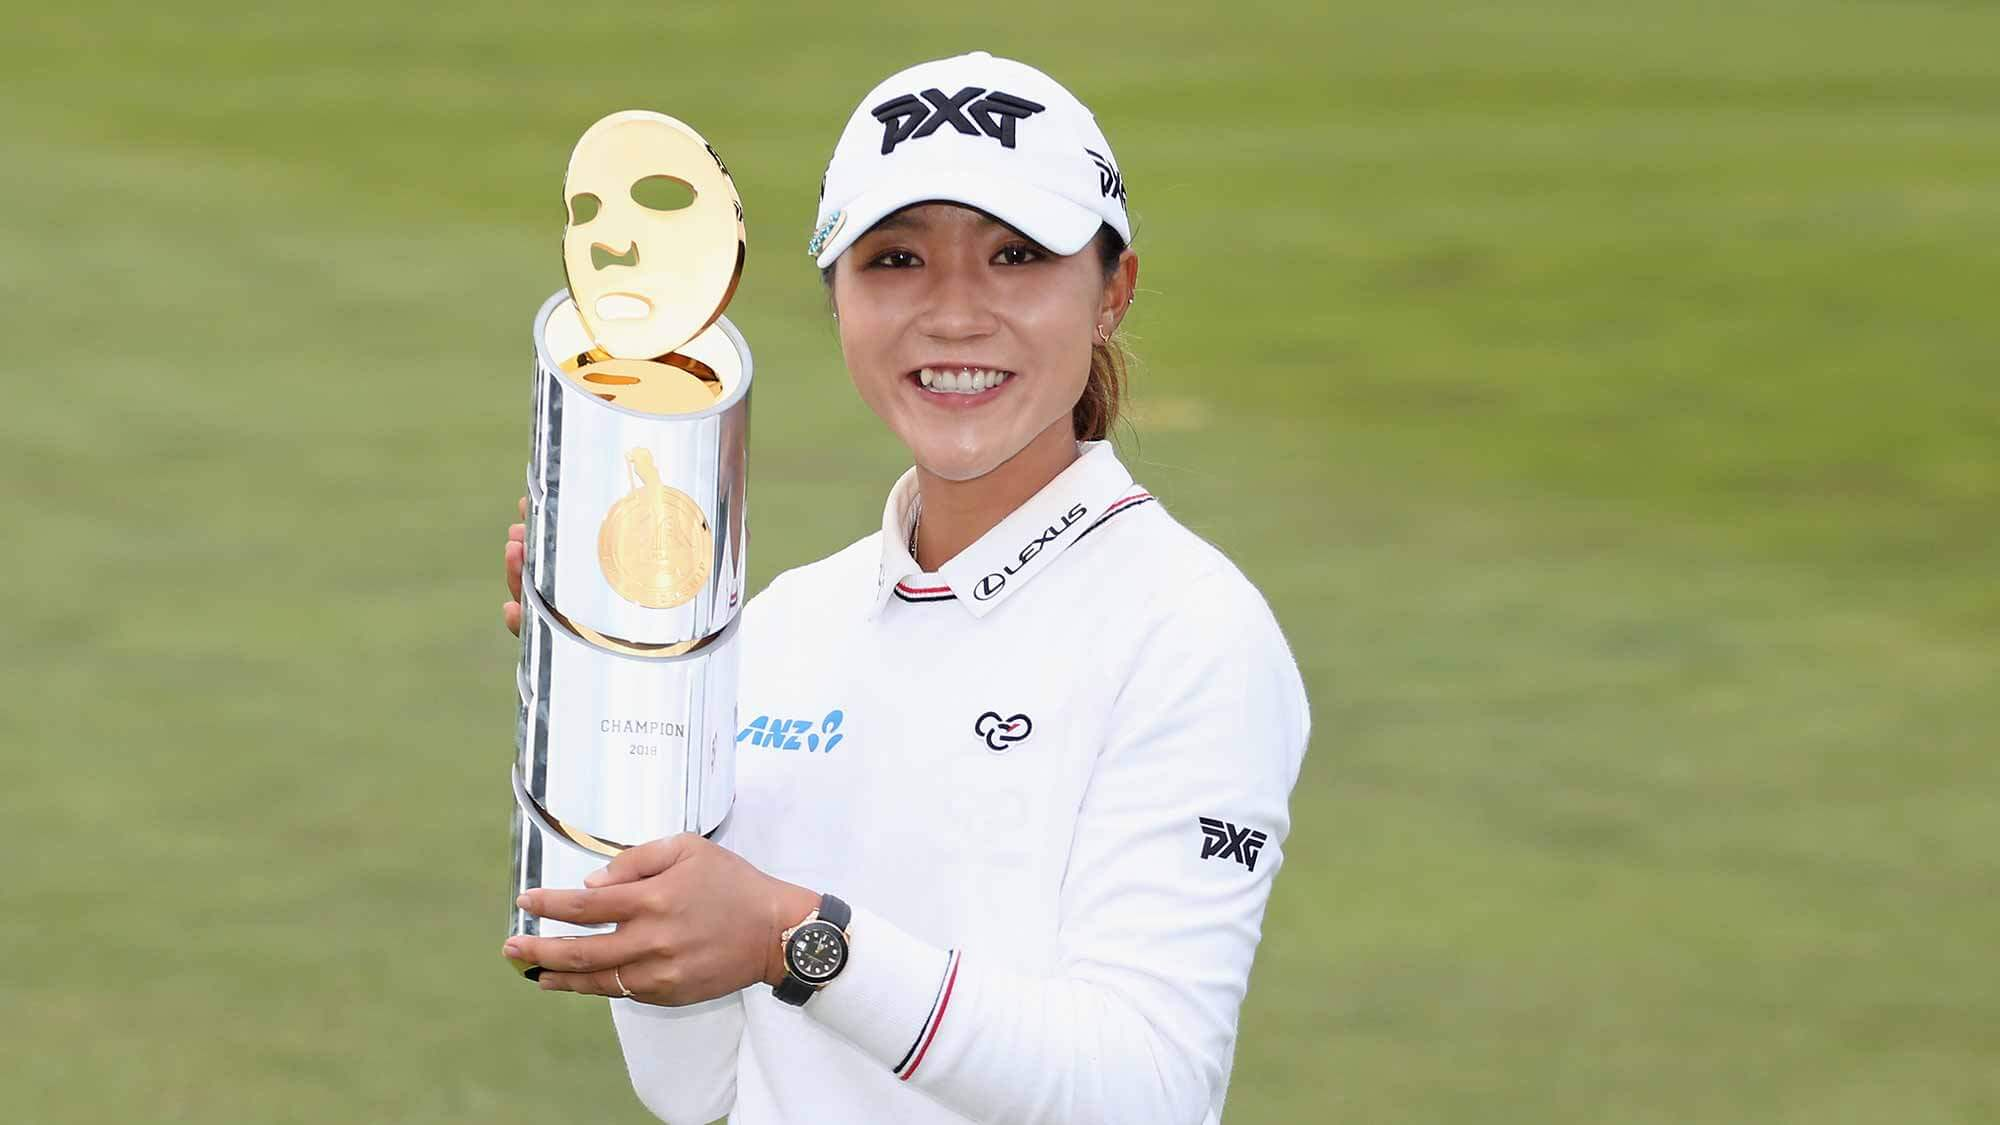 Lydia Ko back to winning ways, gambler collects huge paycheck